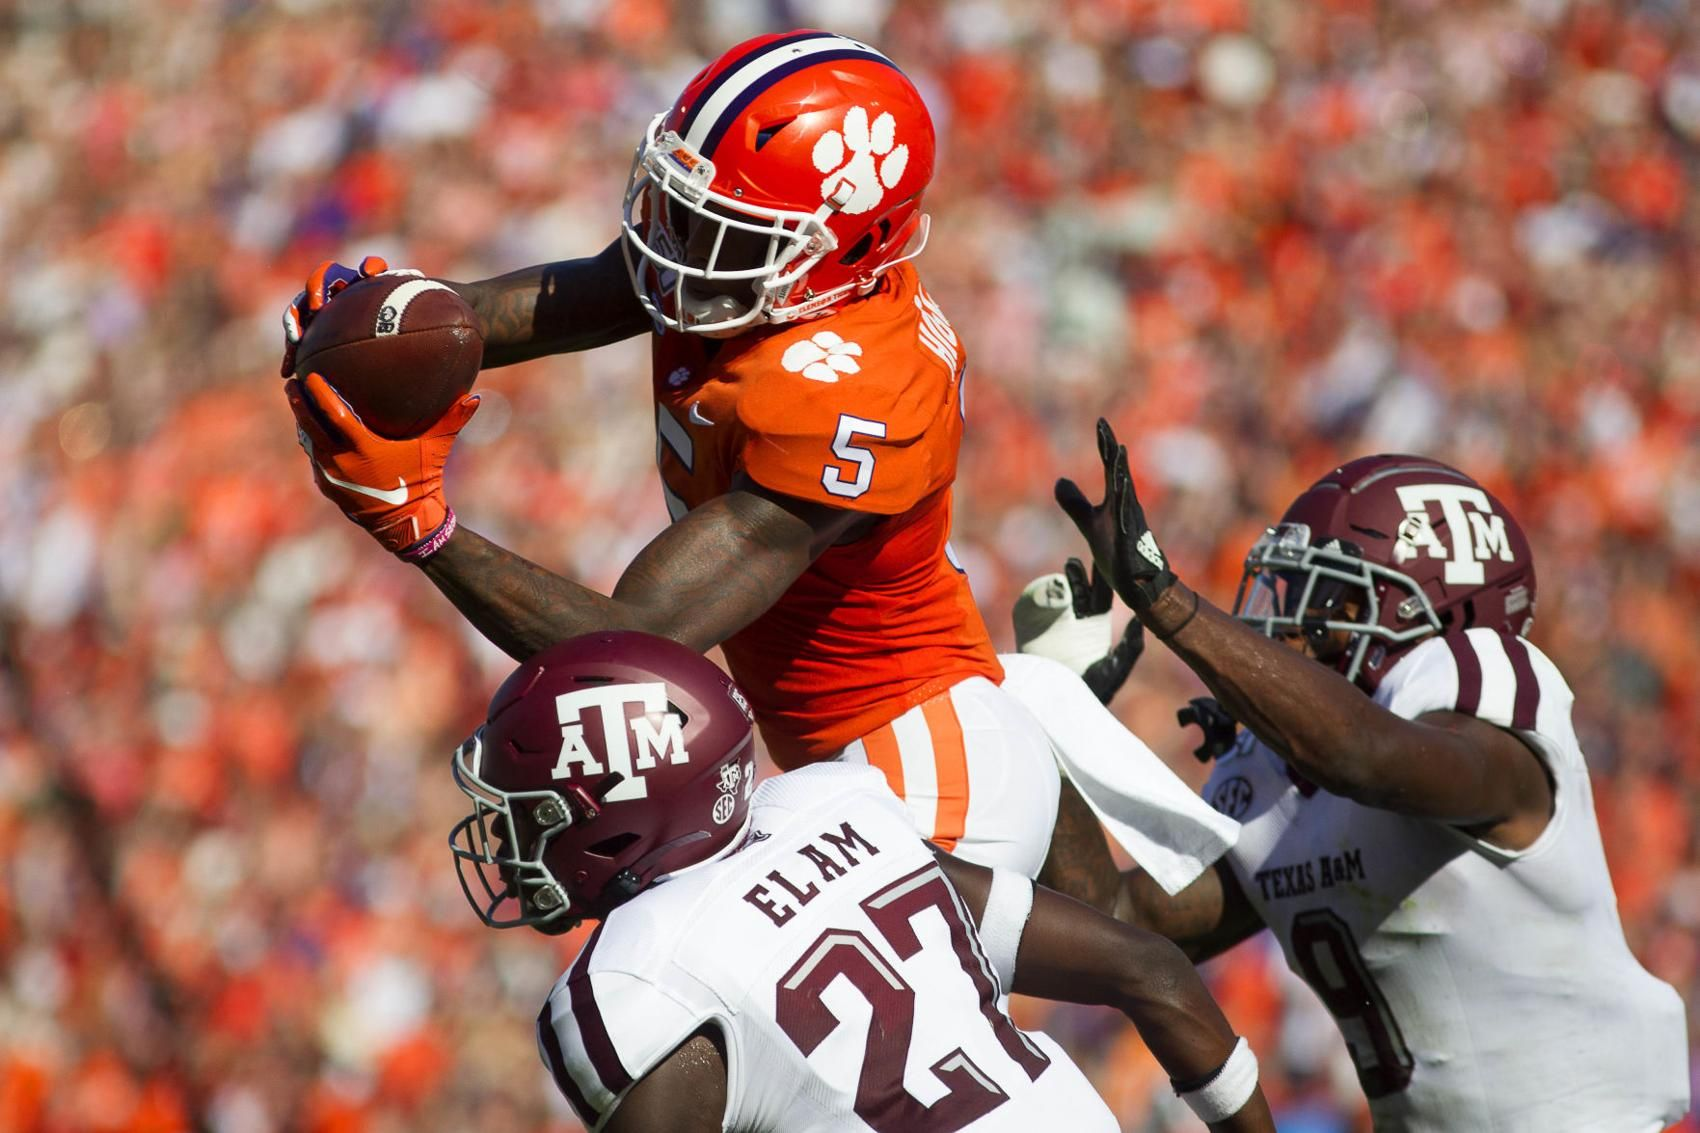 No. 1 Clemson downs No. 12 A&M for 17th straight win